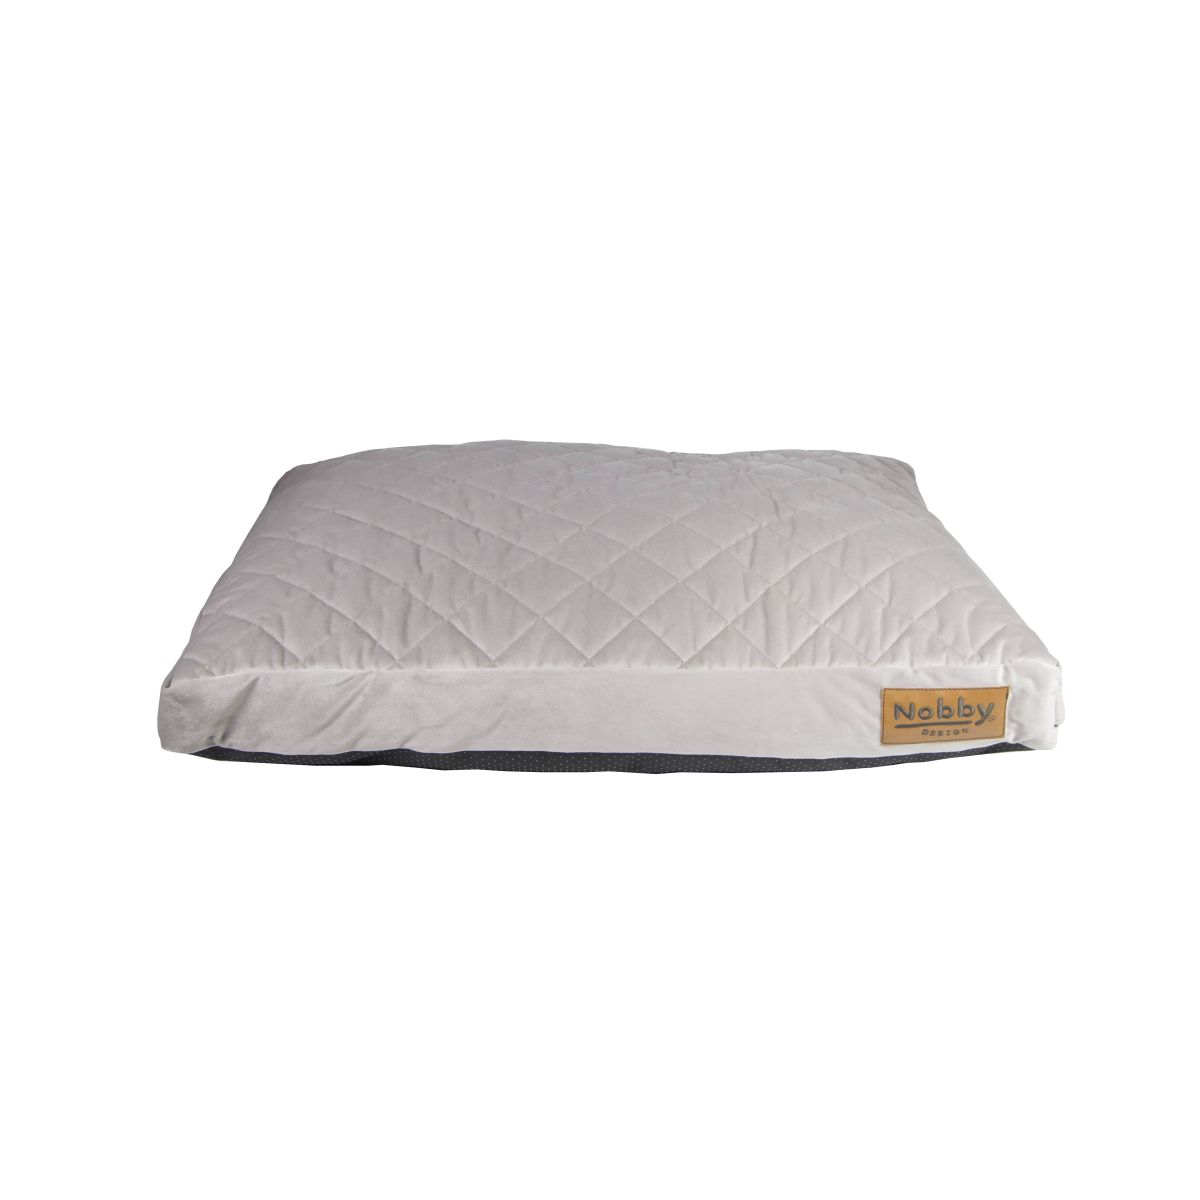 NB BED VEL. SMOKE 108X68X8CM 00000